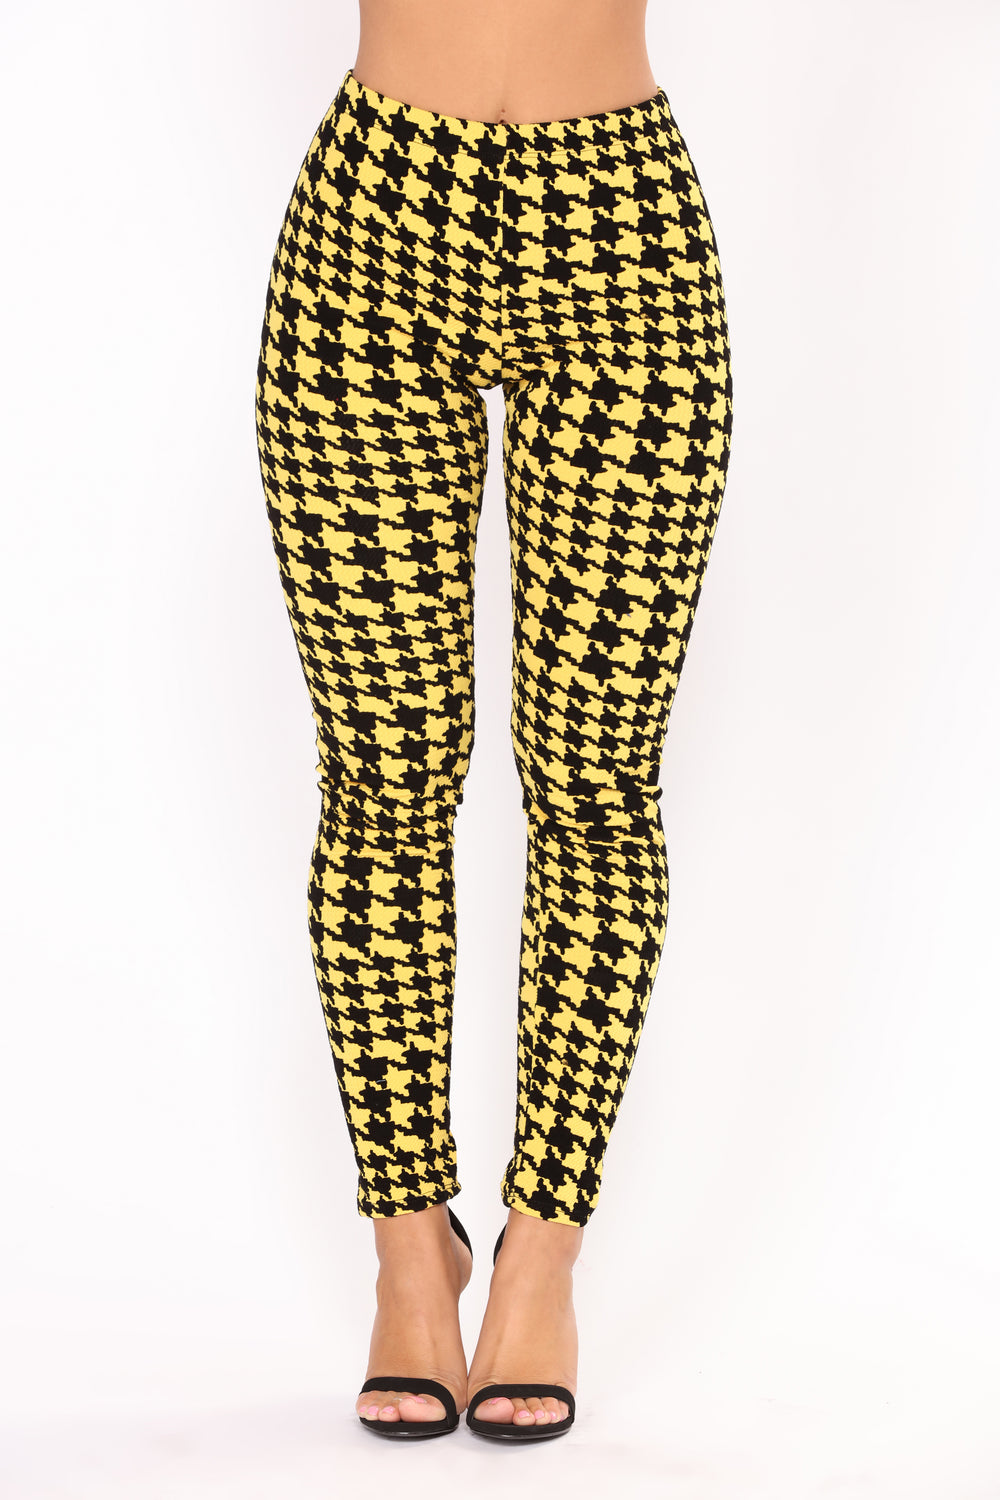 Alfie Houndstooth Pant Set - Yellow